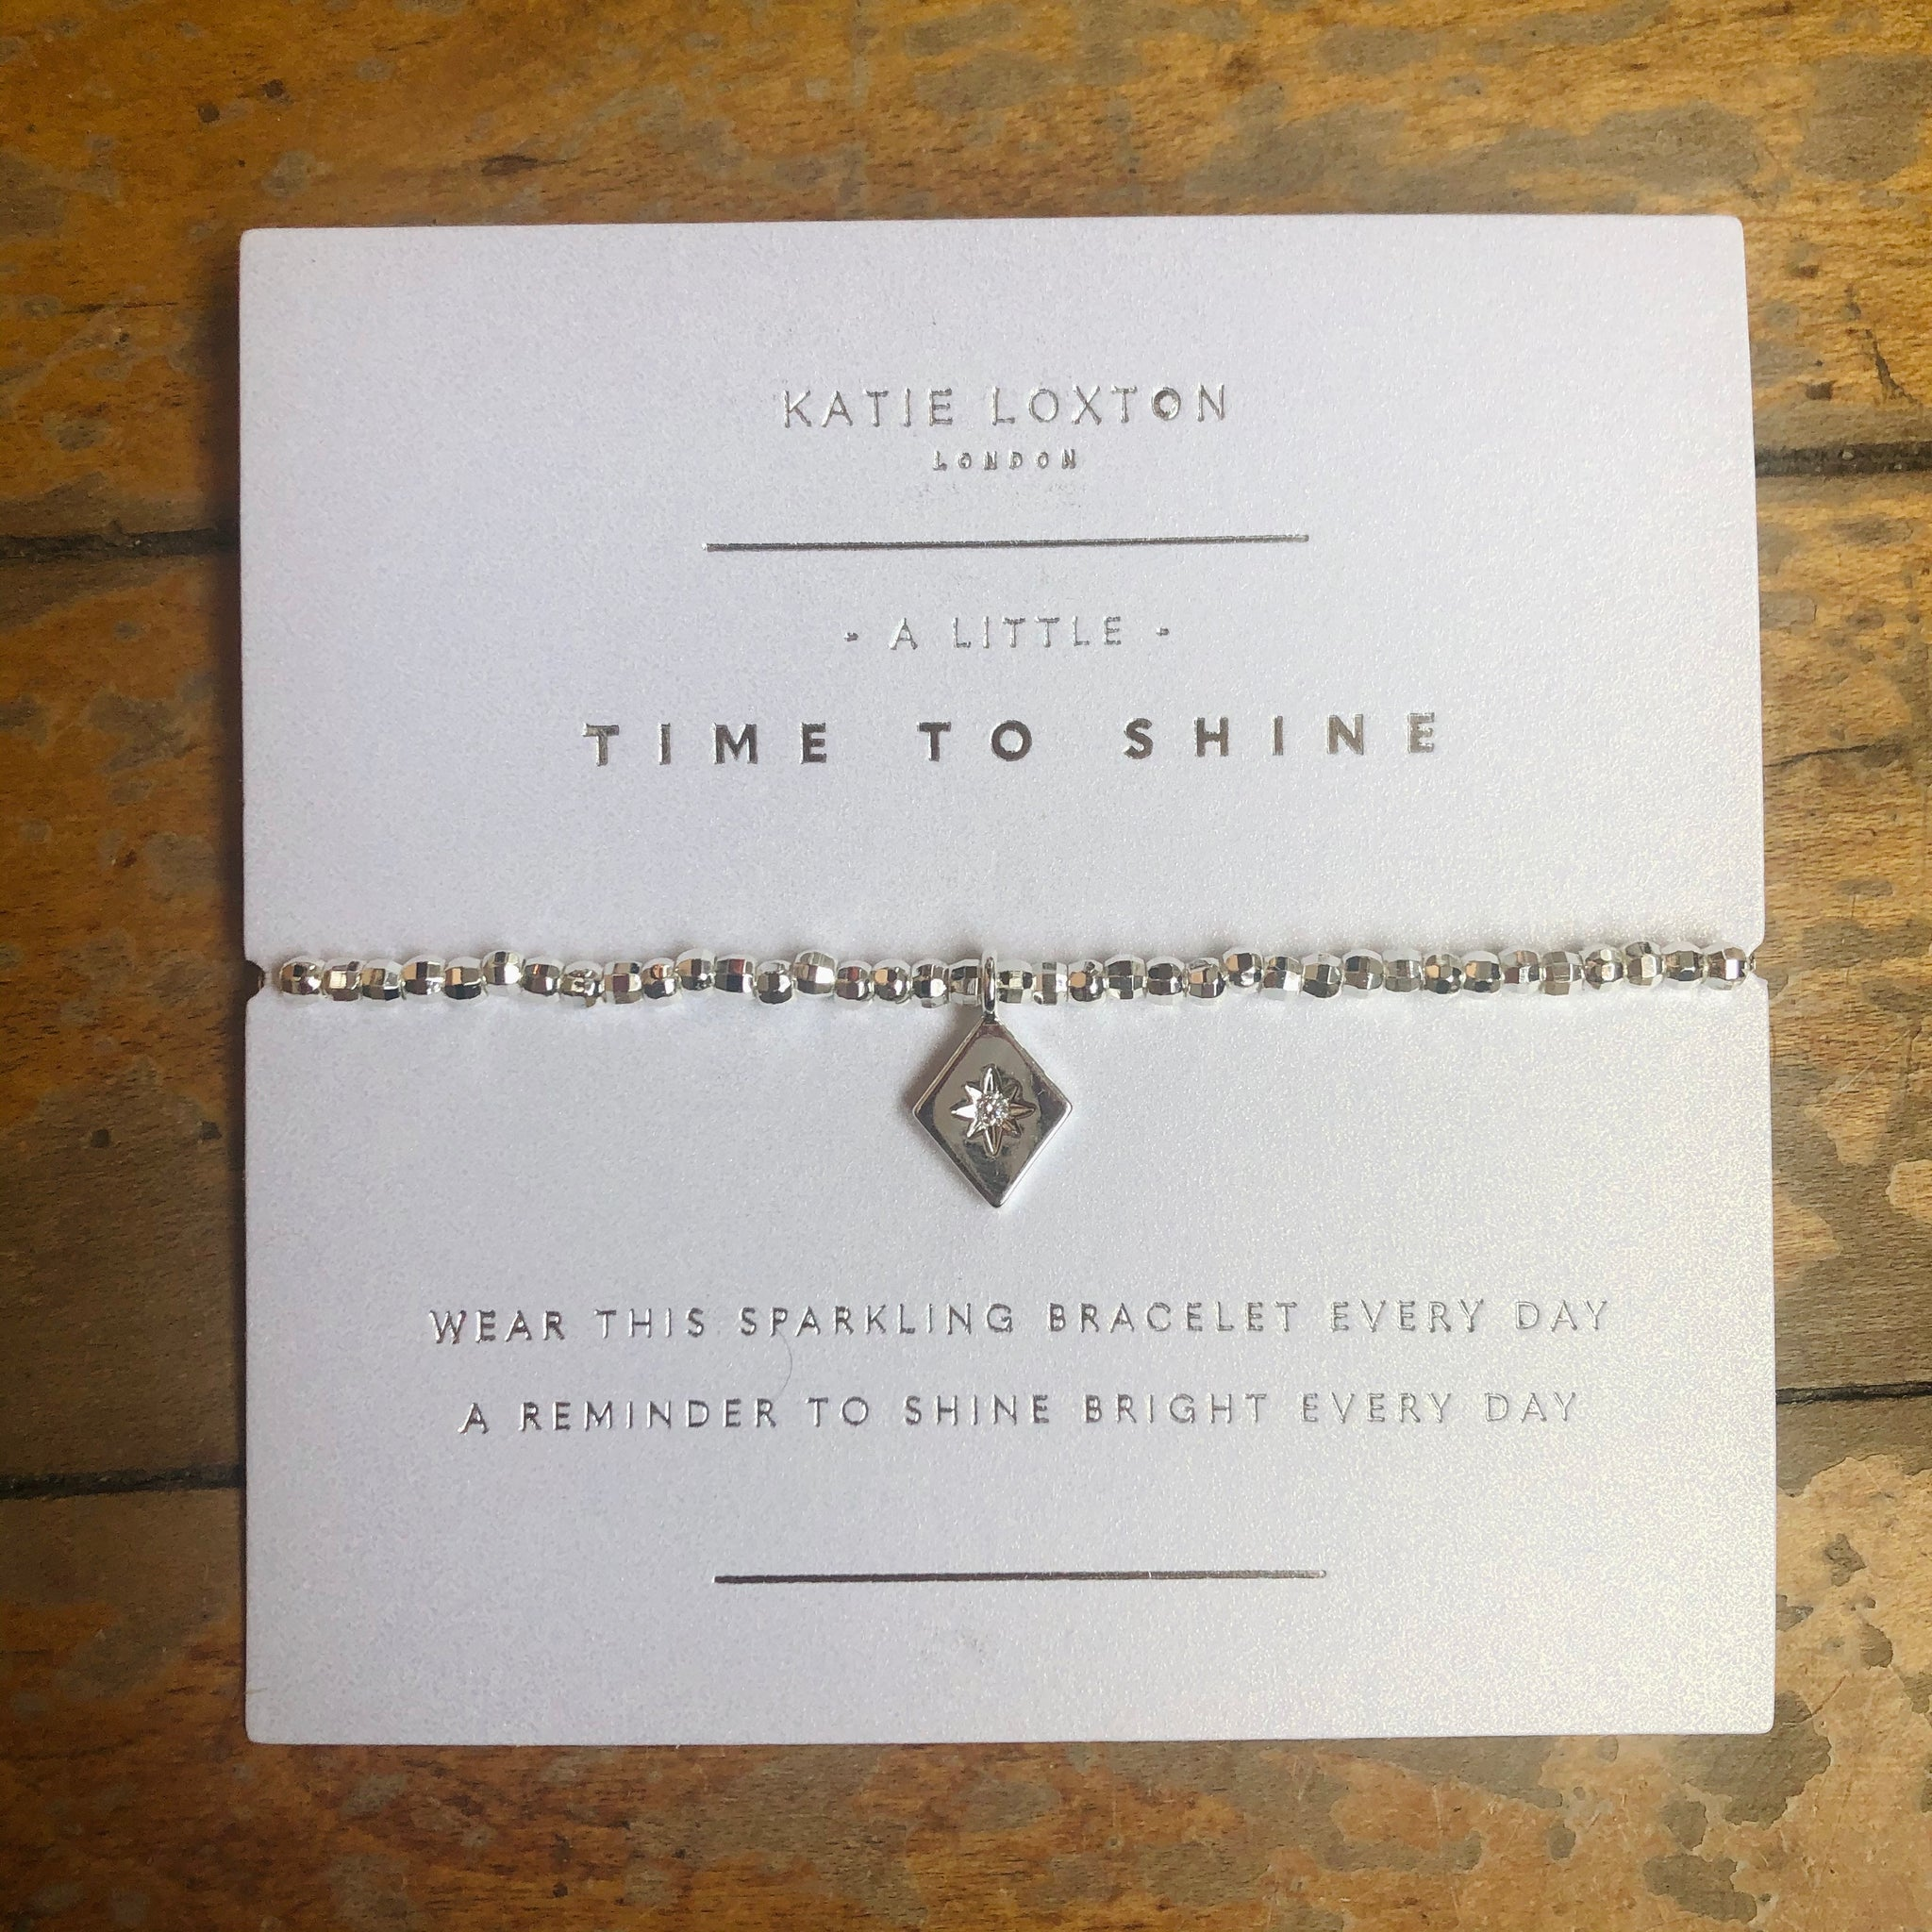 A Little Time to Shine Bracelet